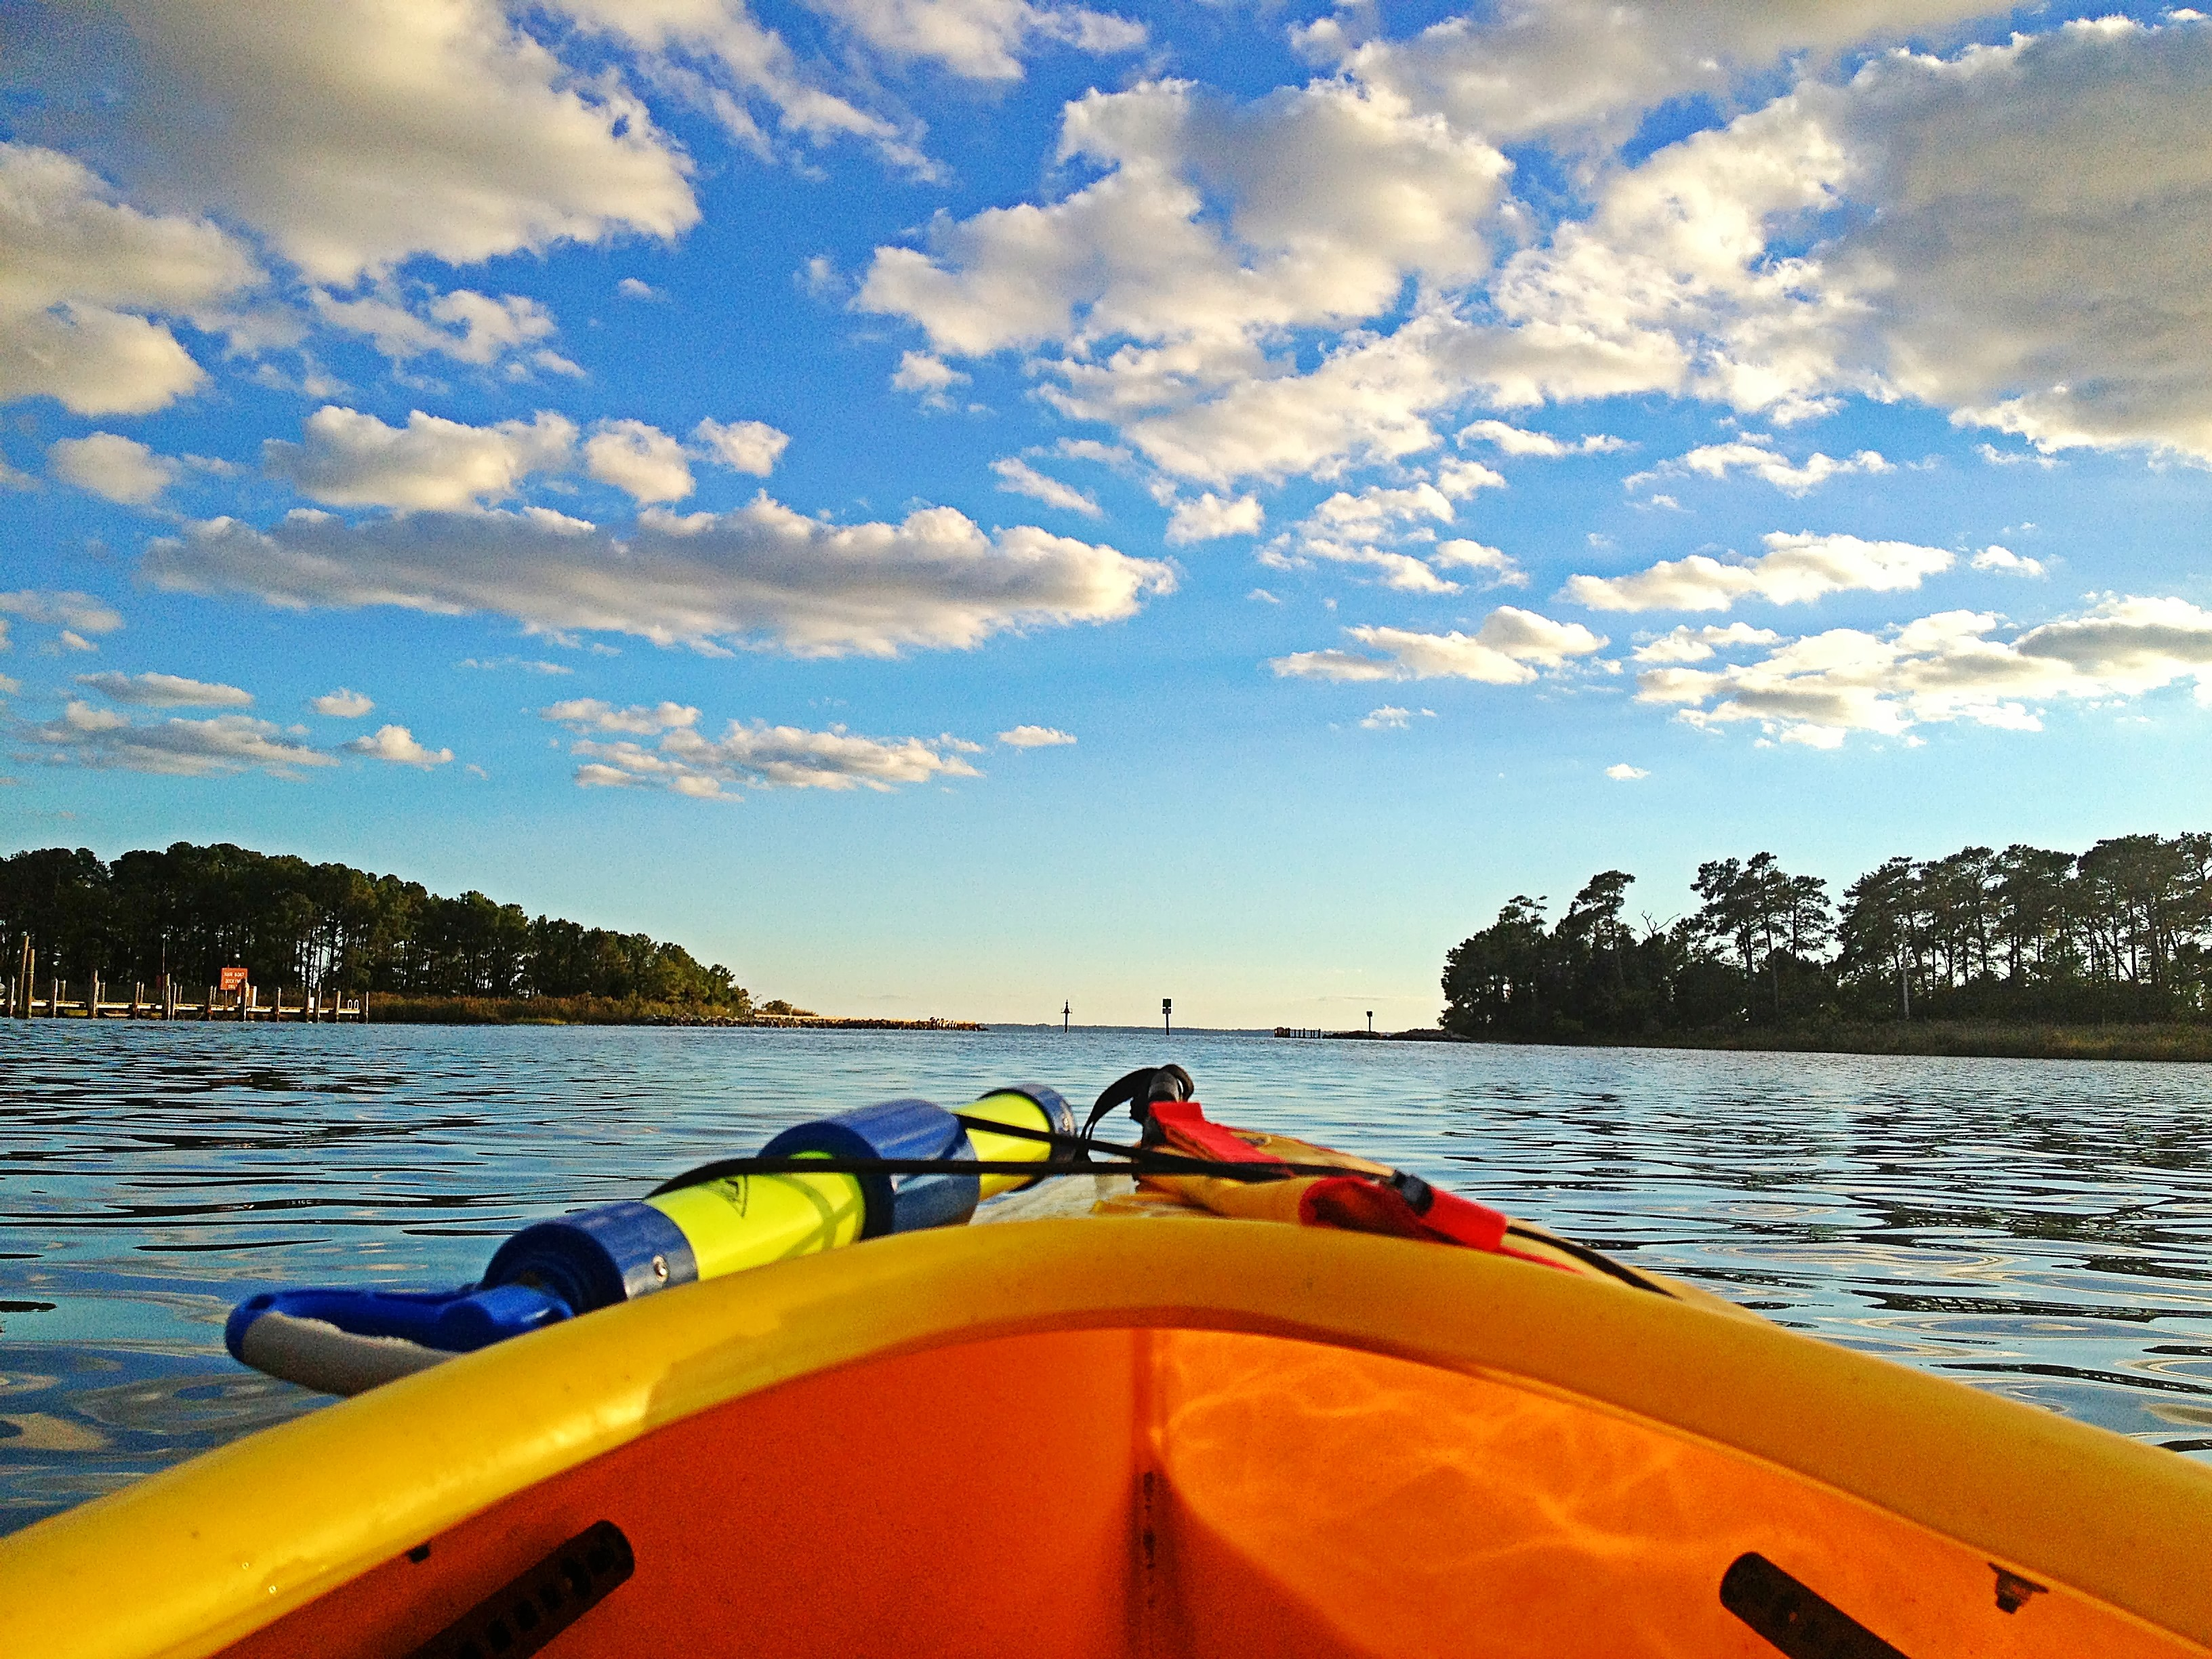 Paddling the Chesapeake Bay